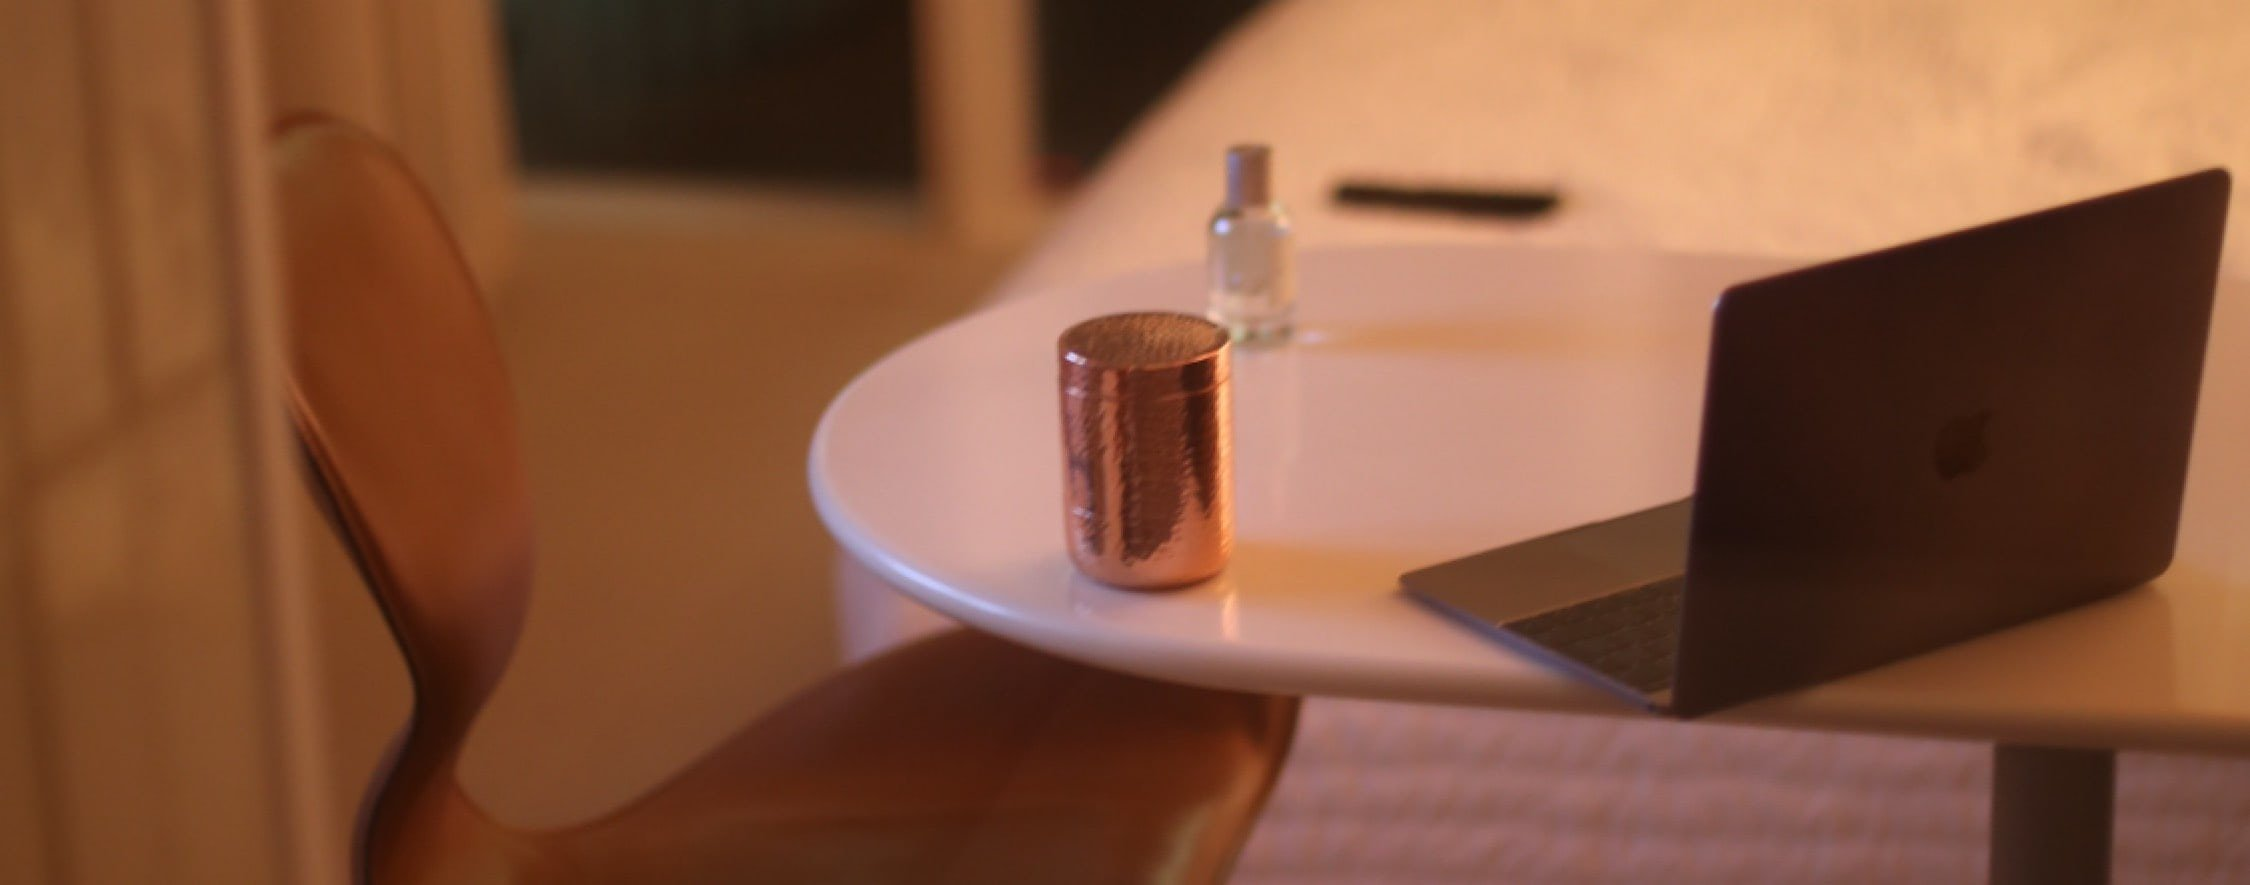 Table LYMA pills and copper vessel